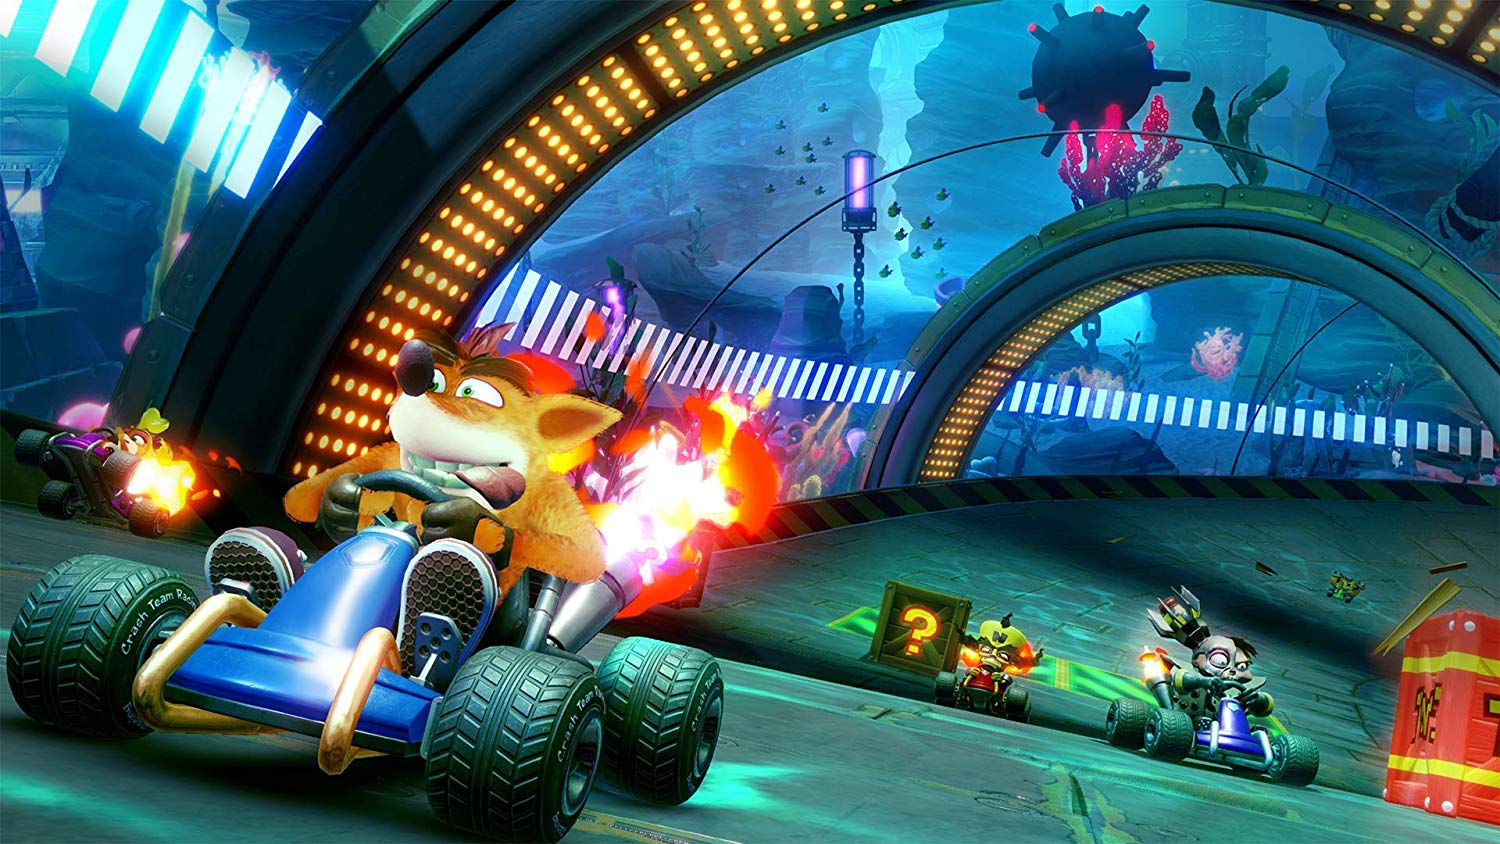 Crash Team Racing: Nitro-Fueled – Nitros Oxide Edition